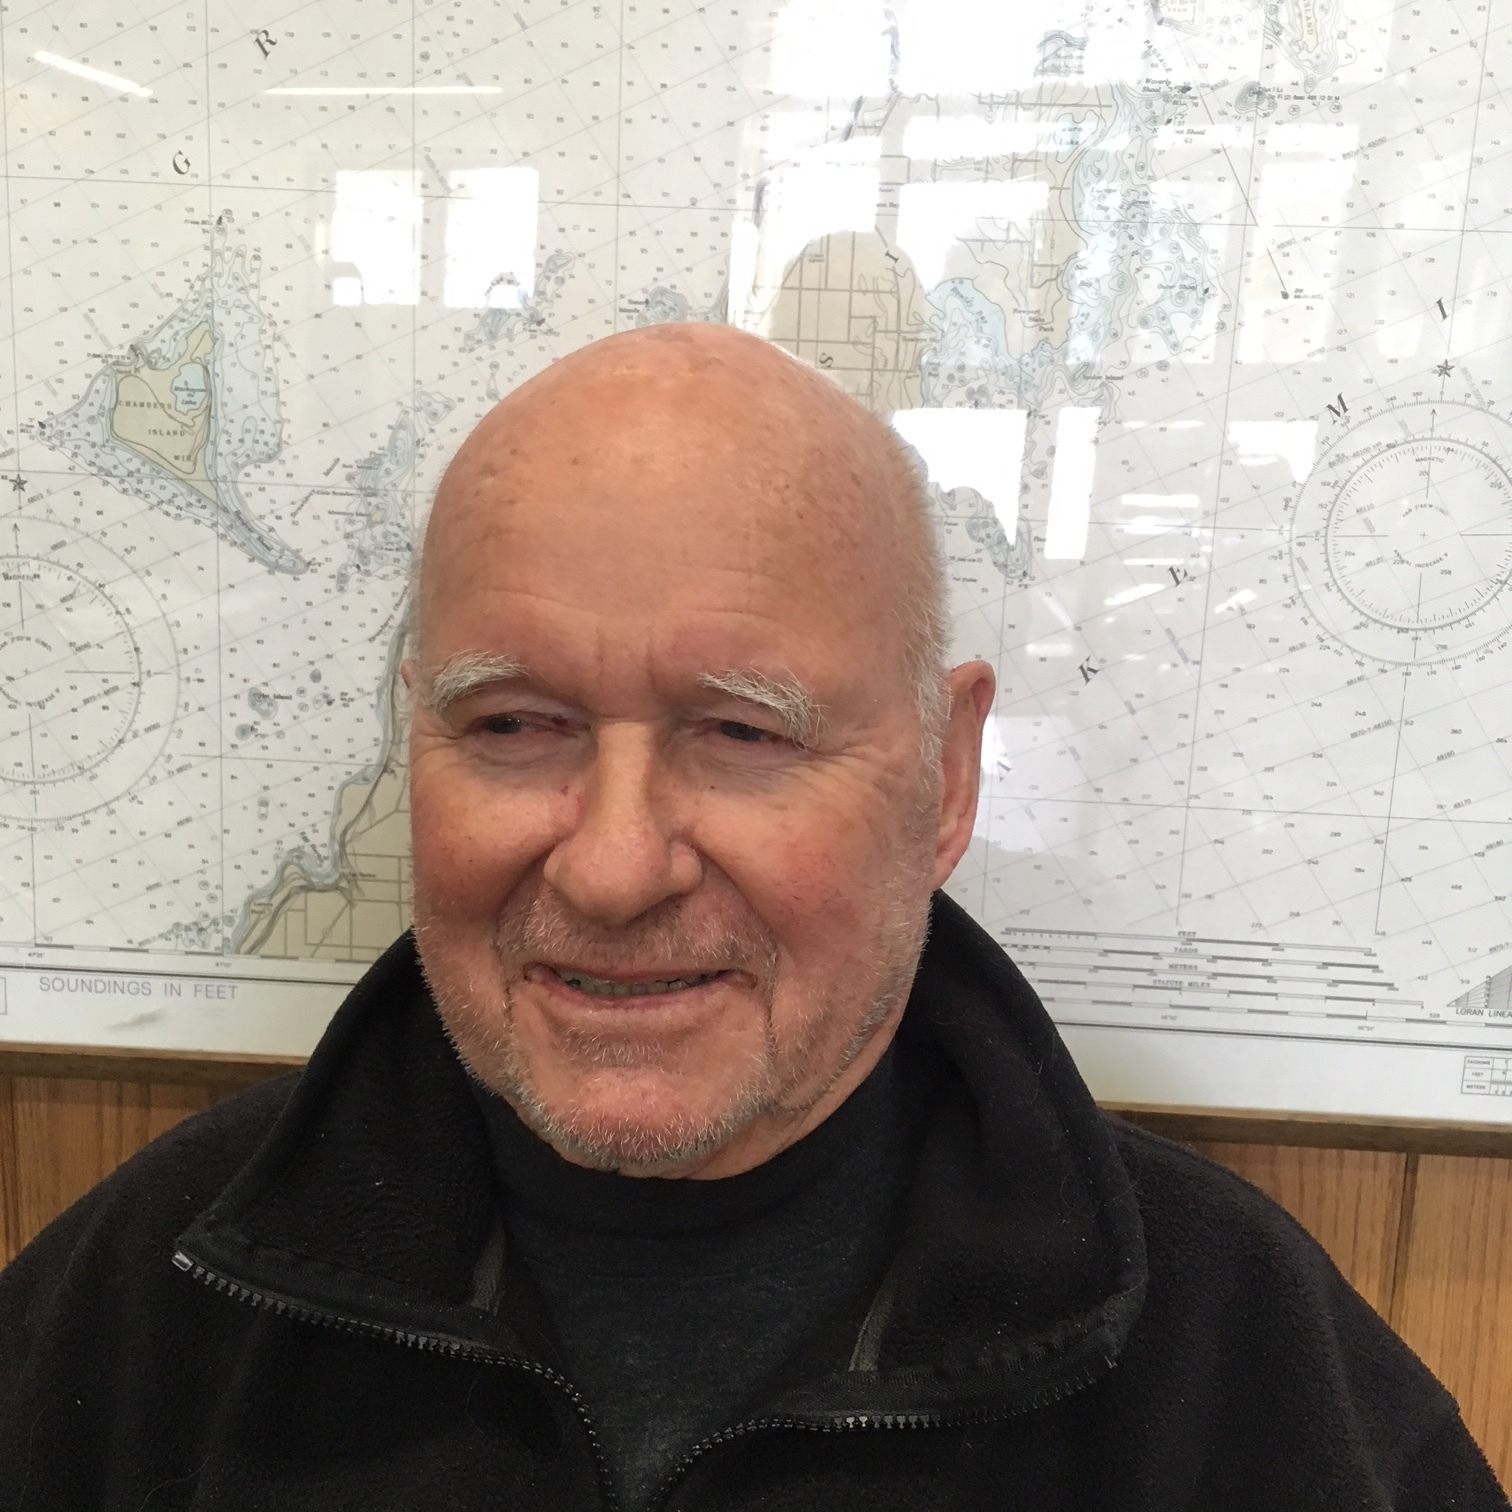 Dick Clancy - My family began coming to the island in the mid 30's. They built a home in West Harbor so we would summer here on the island. As time went on